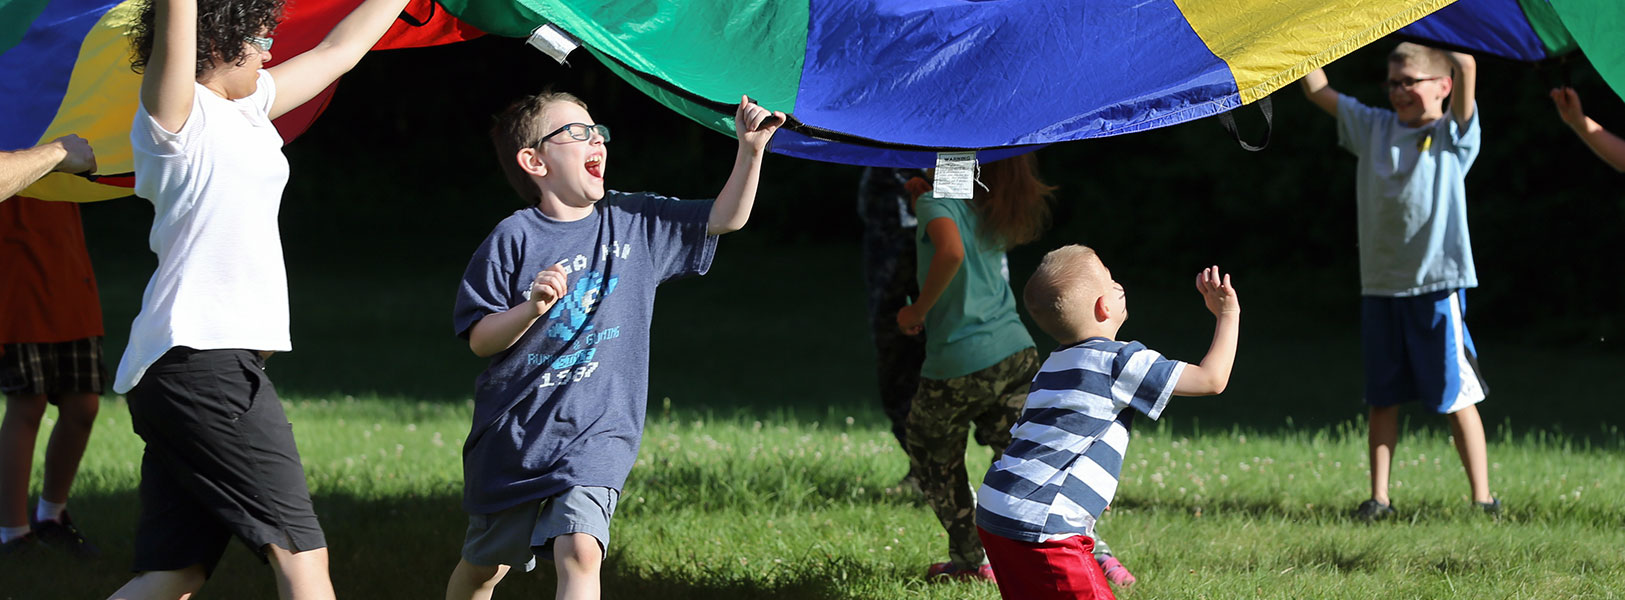 Kids laughing and playing with a colorful parachute